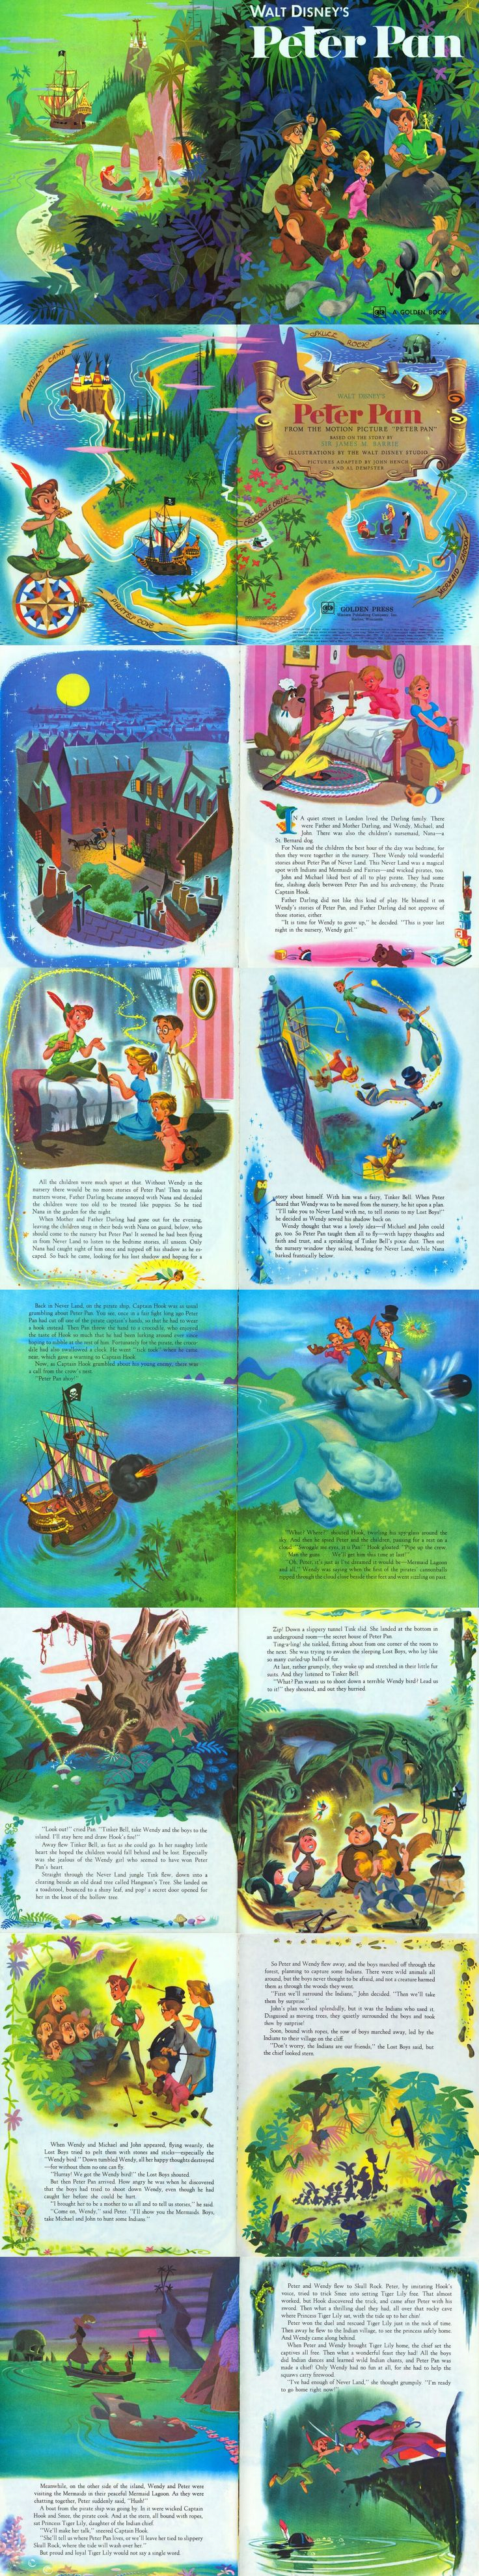 """Walt Disney's """"Peter Pan"""", Illustrated by John Hench and Al Dempster, 1952 ~ (1/2)"""